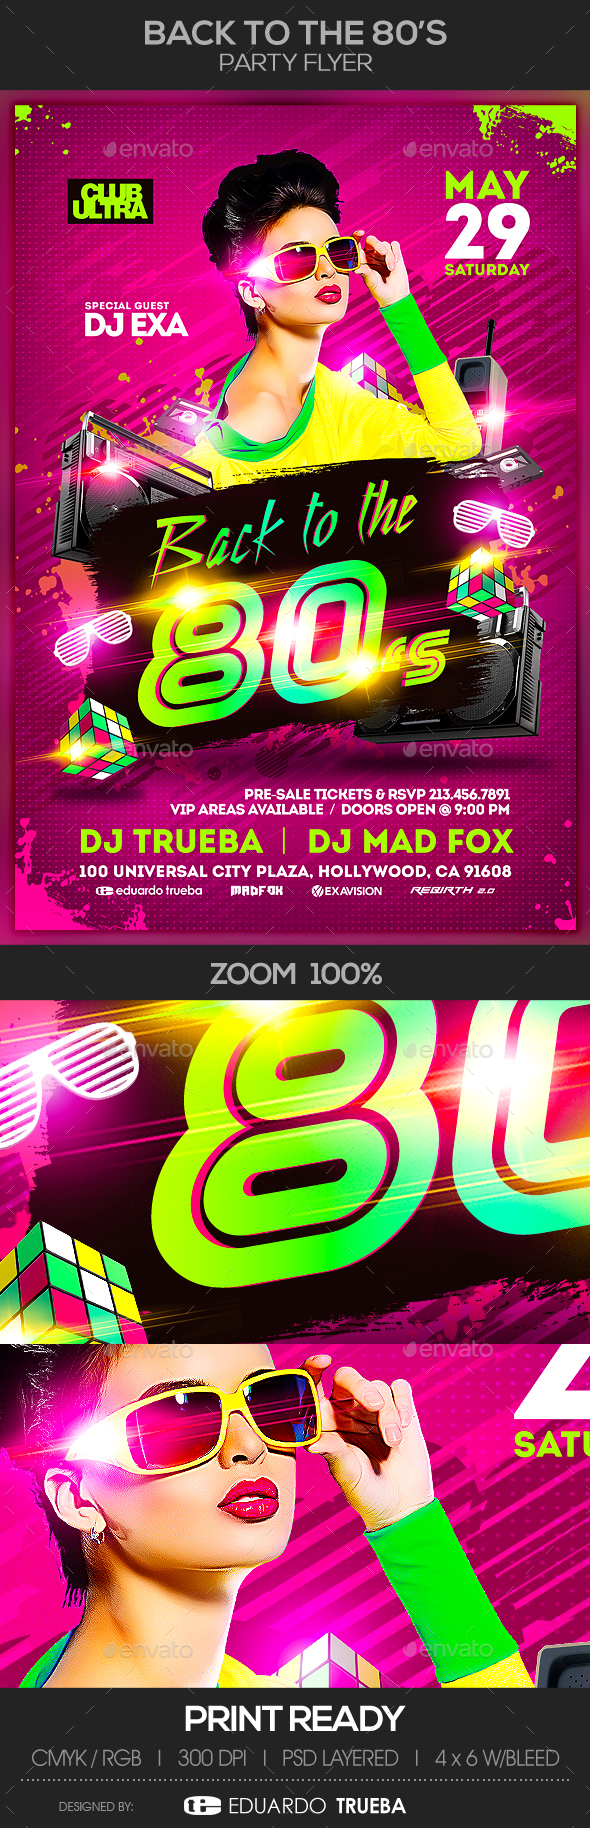 Back to the 80s Party Flyer - Clubs & Parties Events